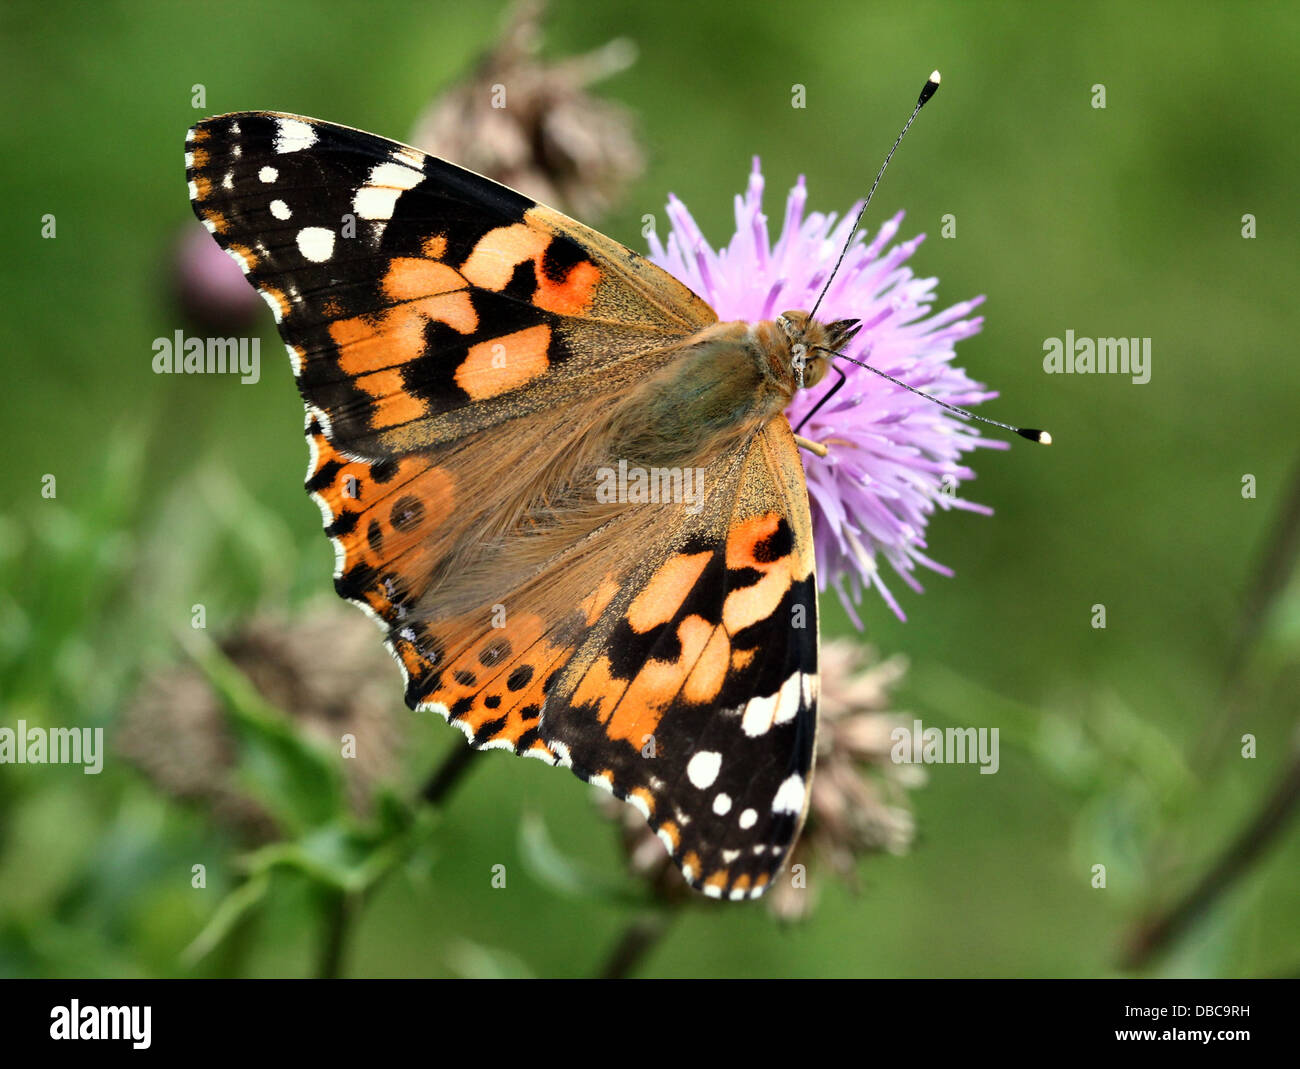 Painted Lady Butterfly Images Stock Photos Amp Painted Lady